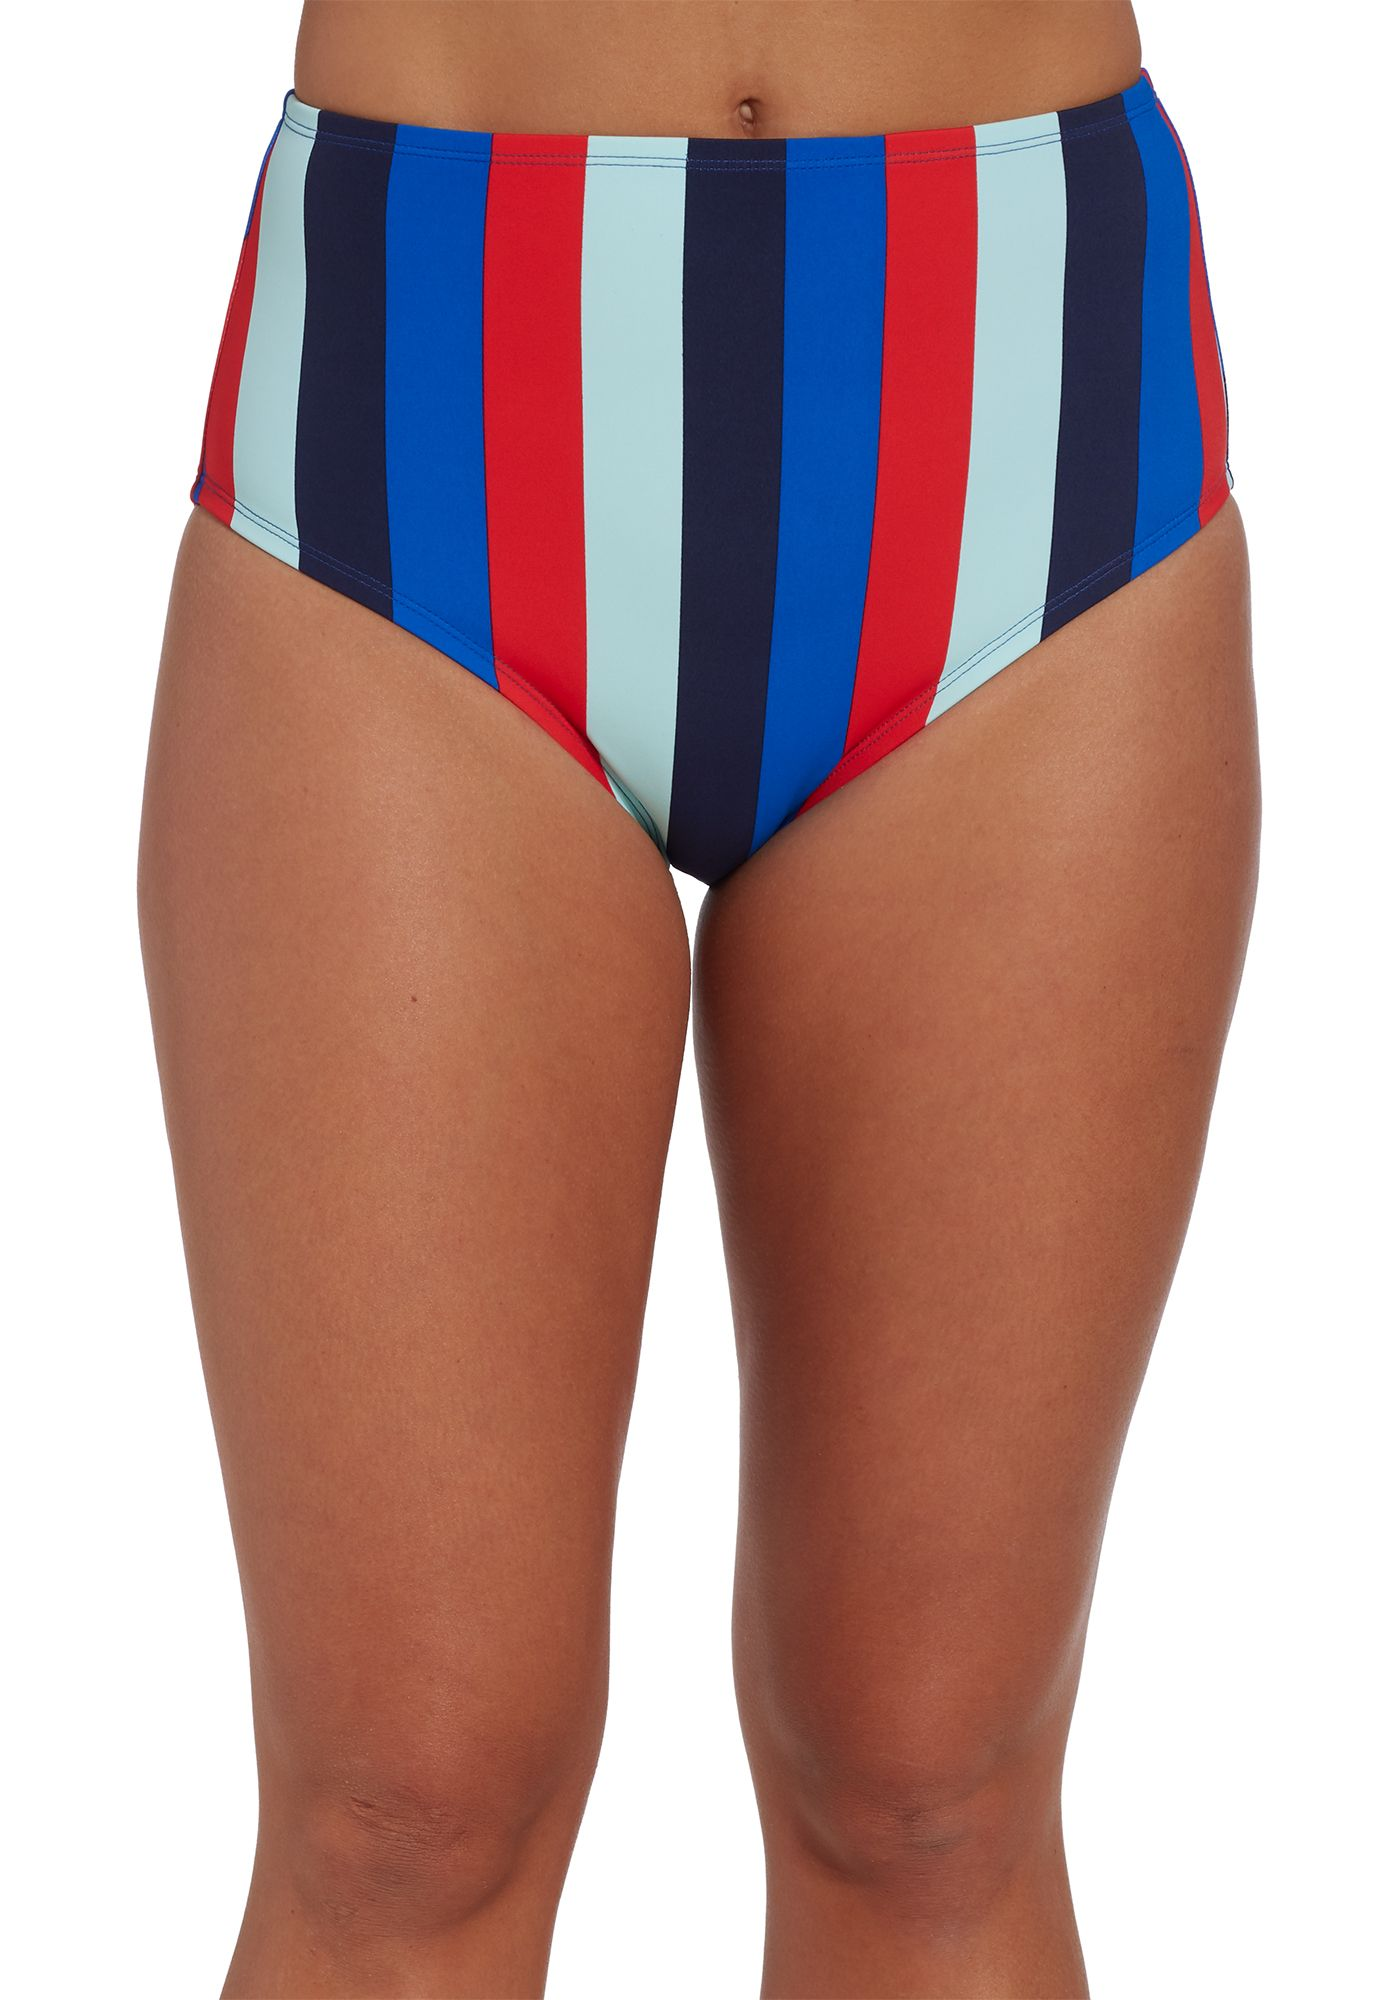 DSG Women's Leia Swim Bottom